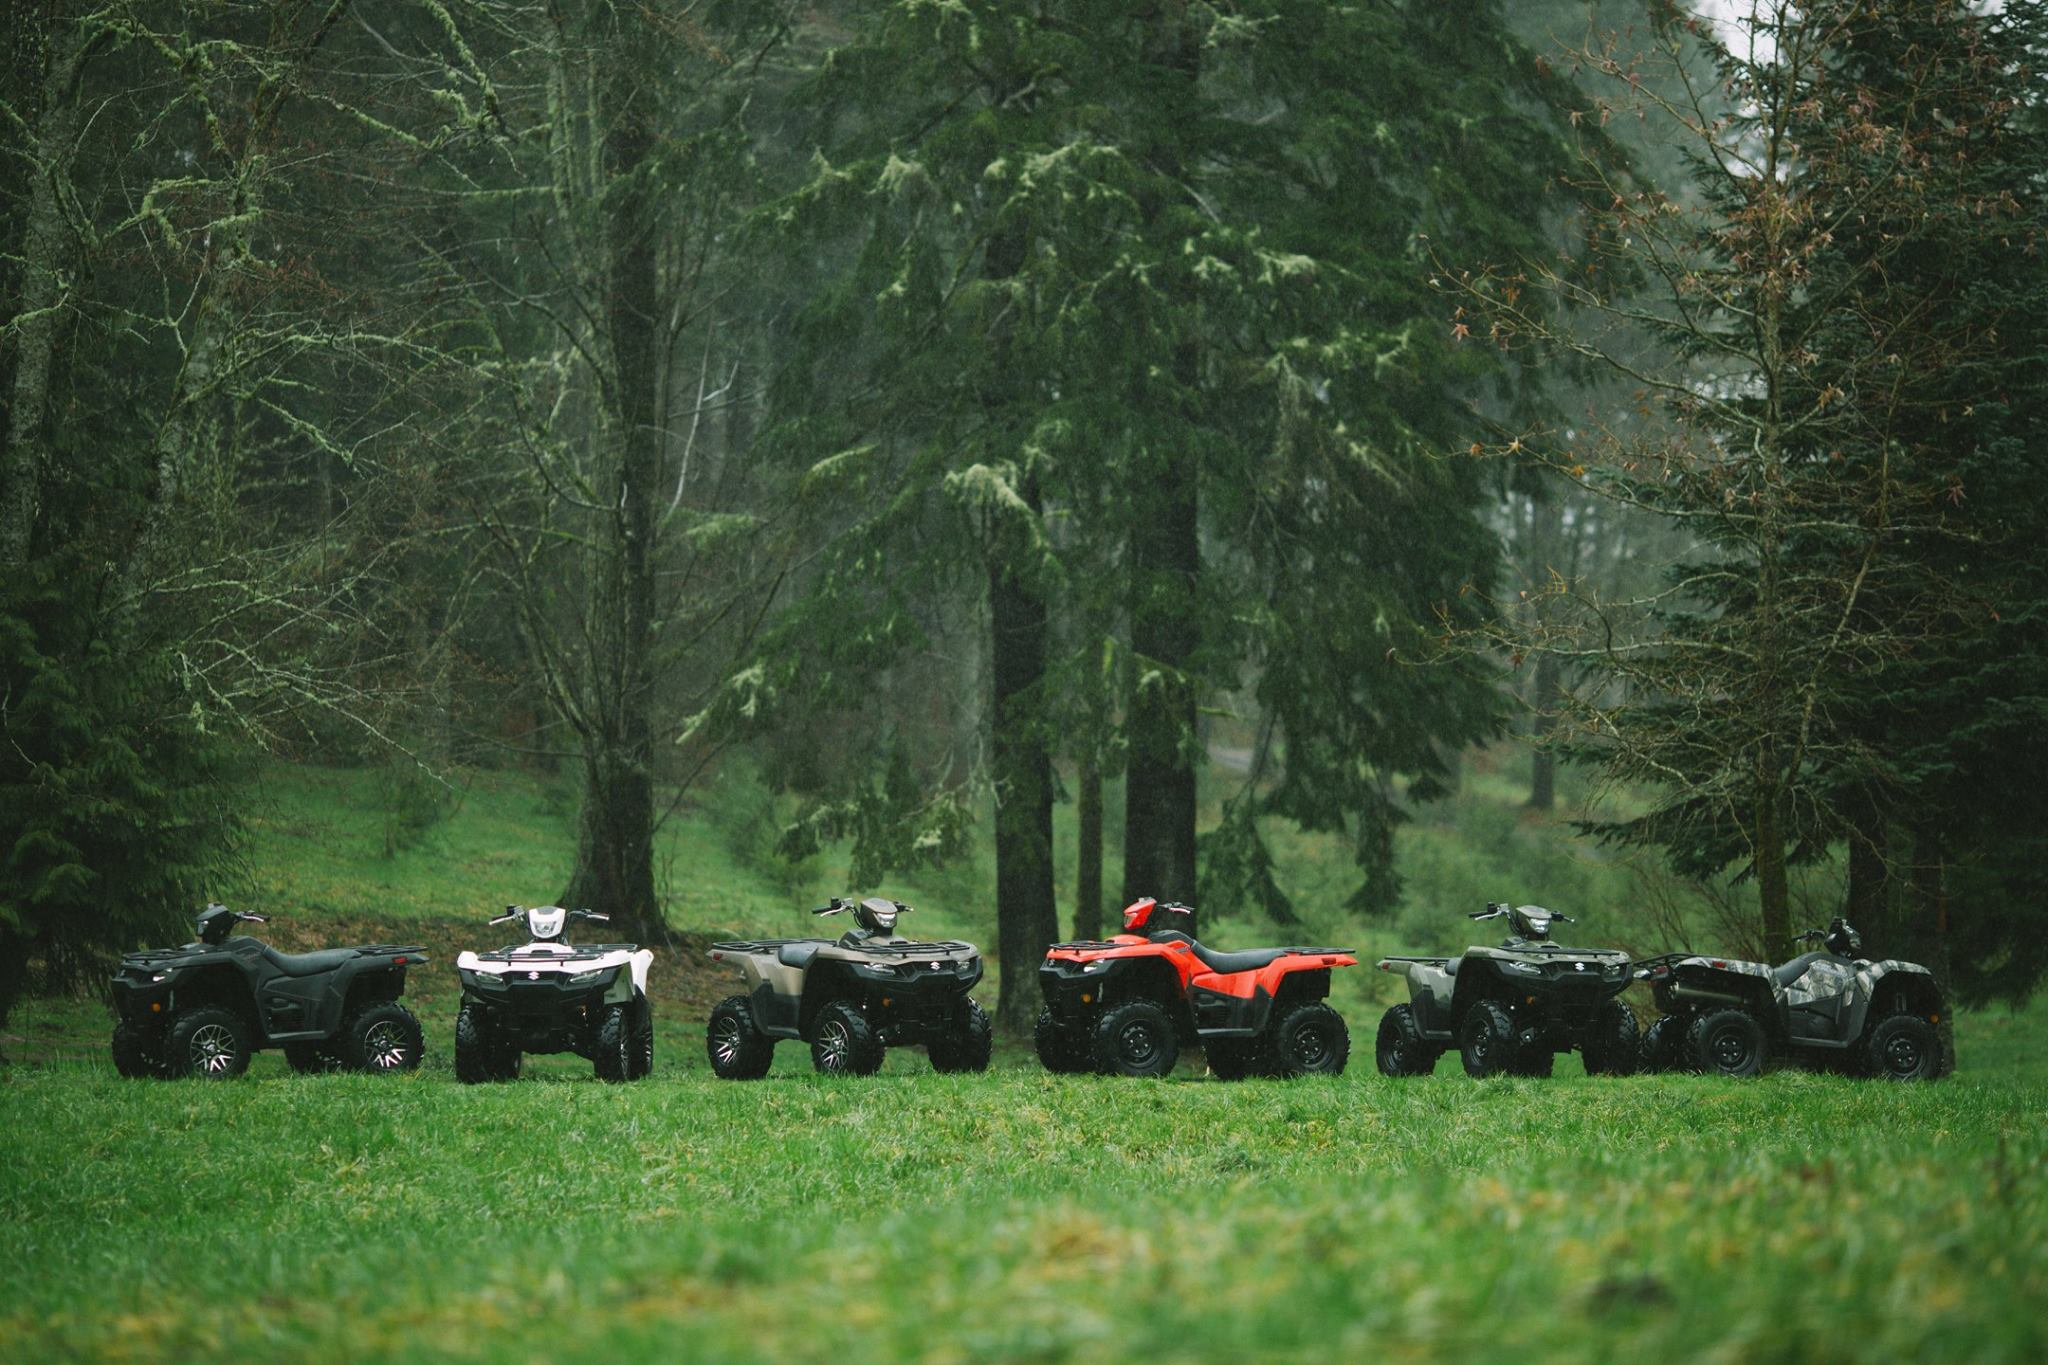 Suzuki KingQuad Lineup in Madison, WI